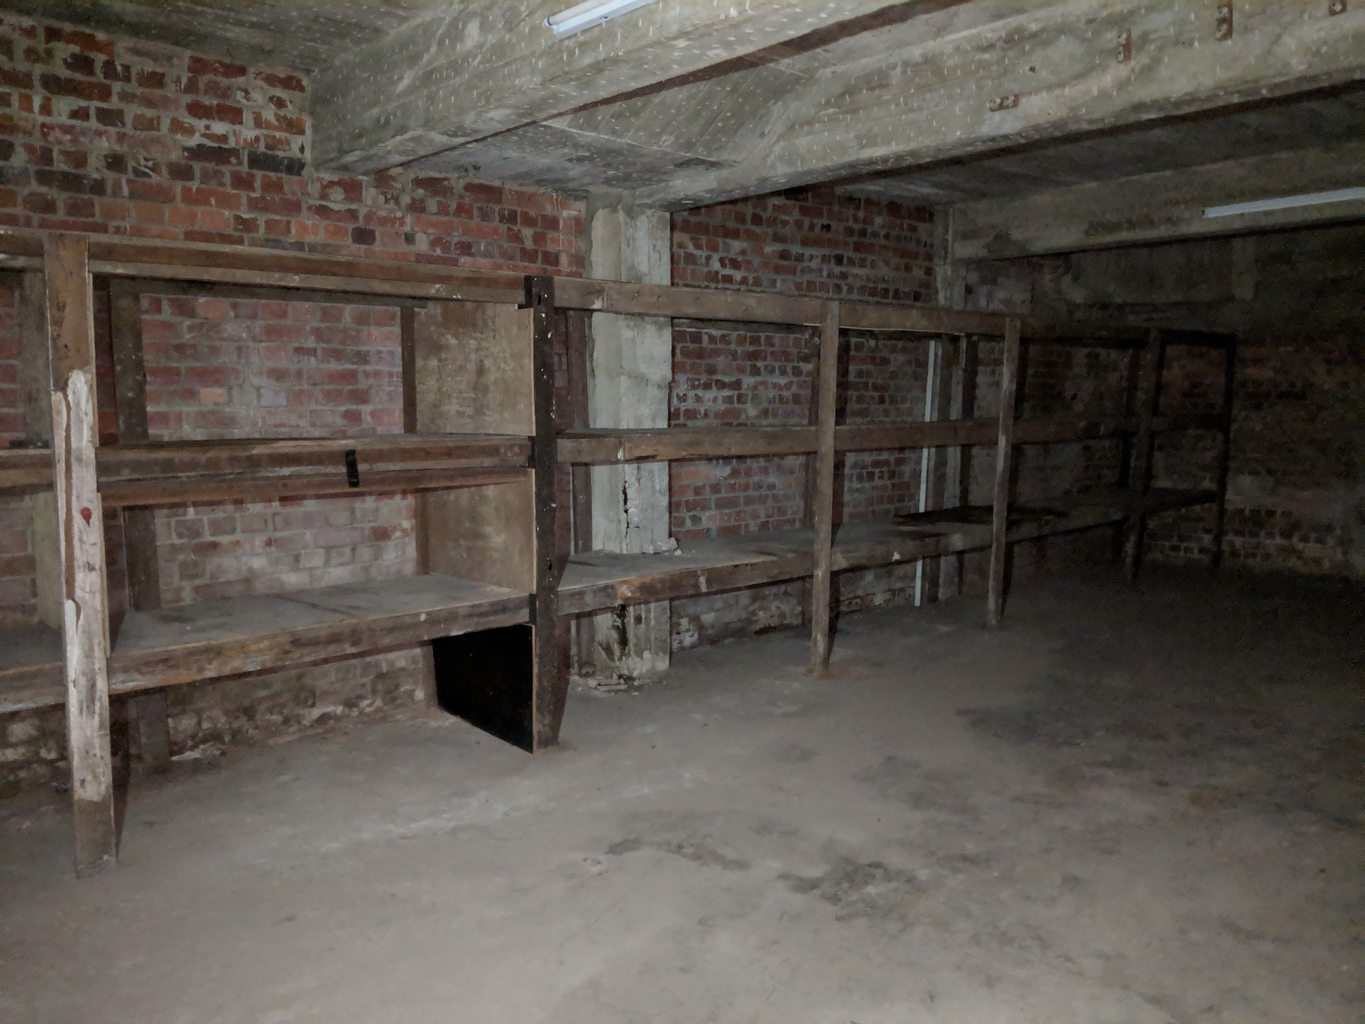 Inside Tiong Bahru Air Raid Shelter